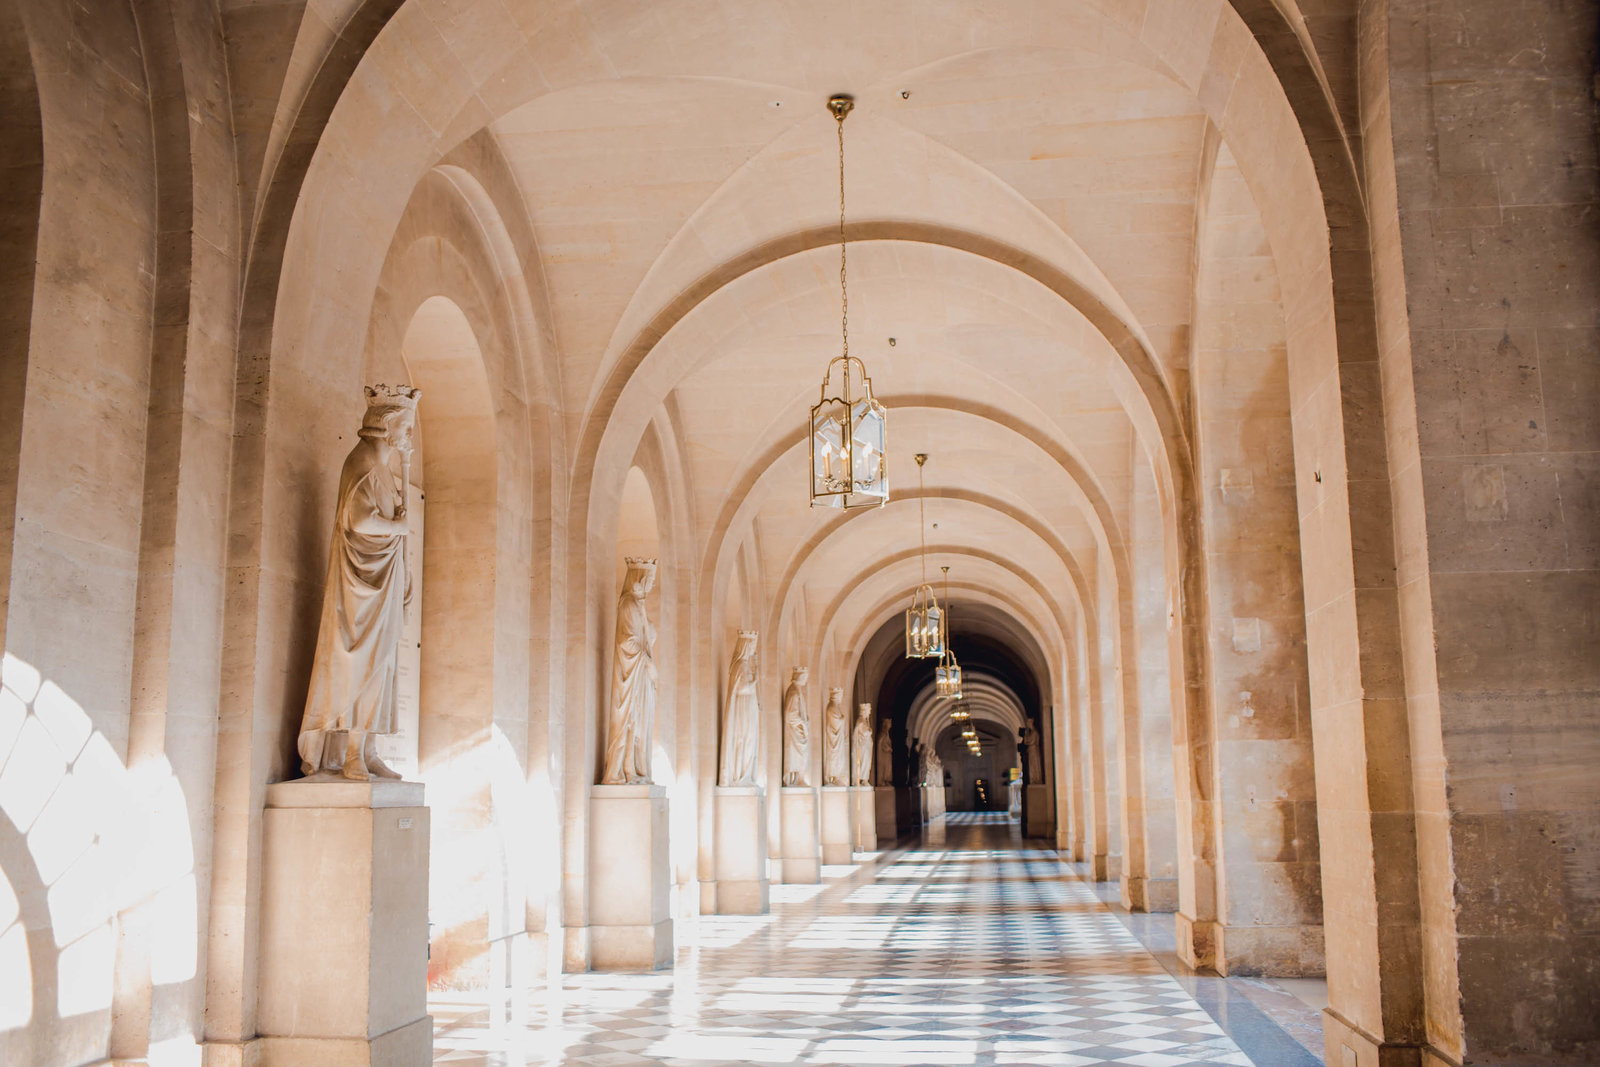 hallway-arch-palace-versailles-france-travel-destination-kate-timbers-photography-1645